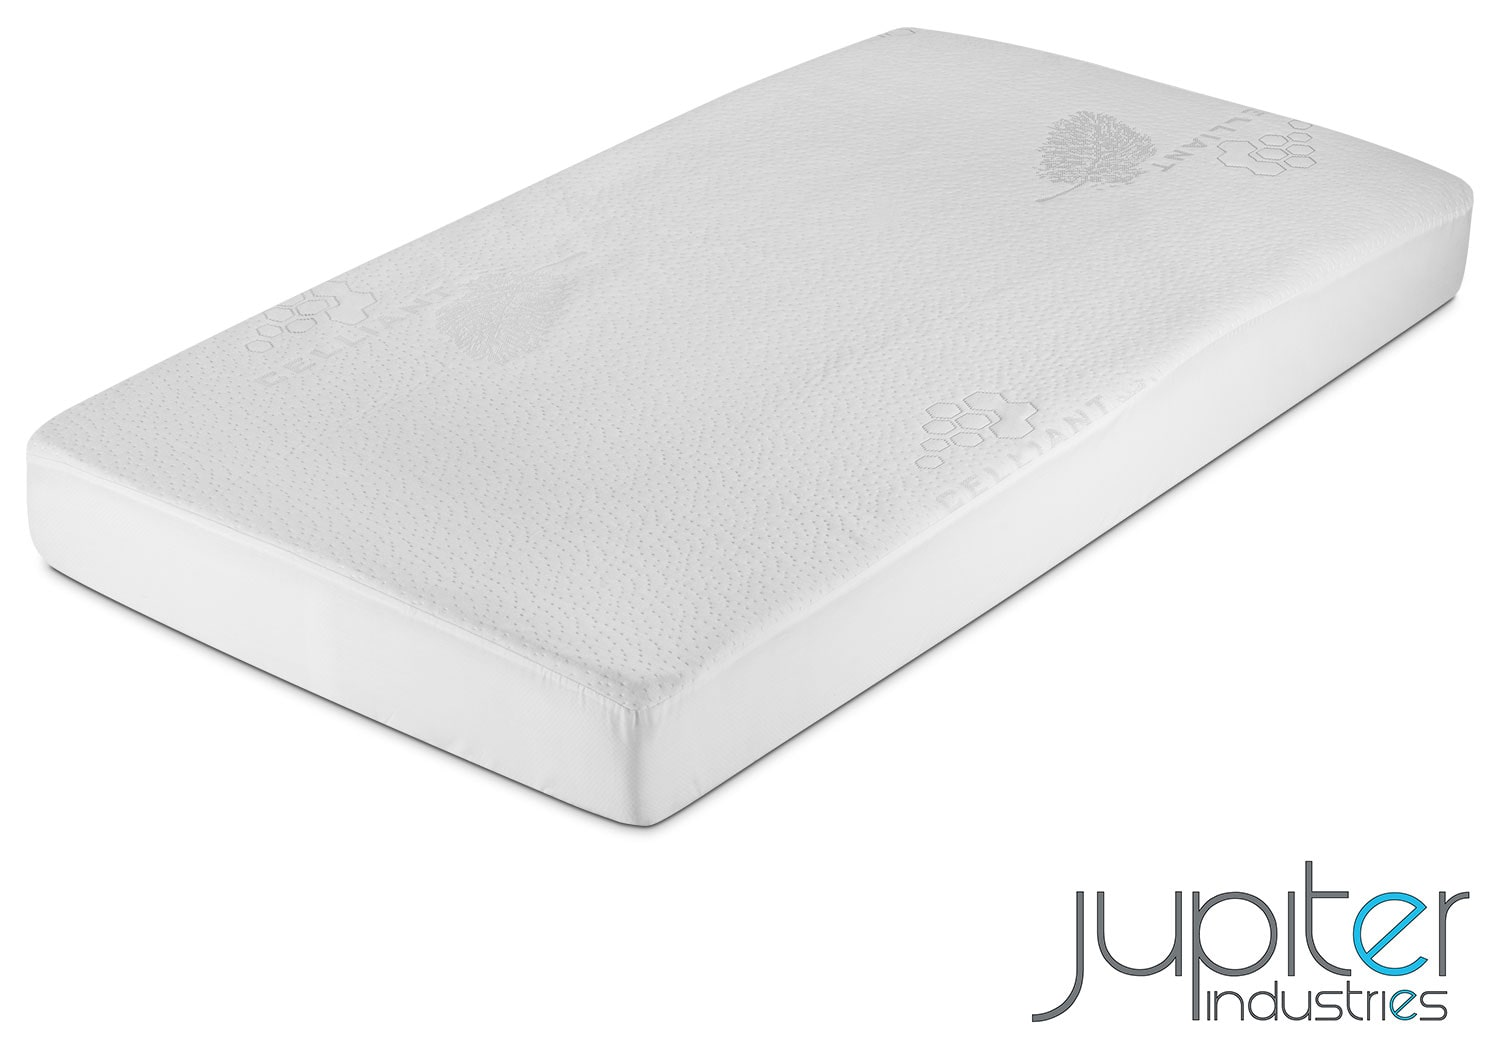 38 X 89cm Crib Mattress Crib Mattress Jupiter Industries Crib Mattress